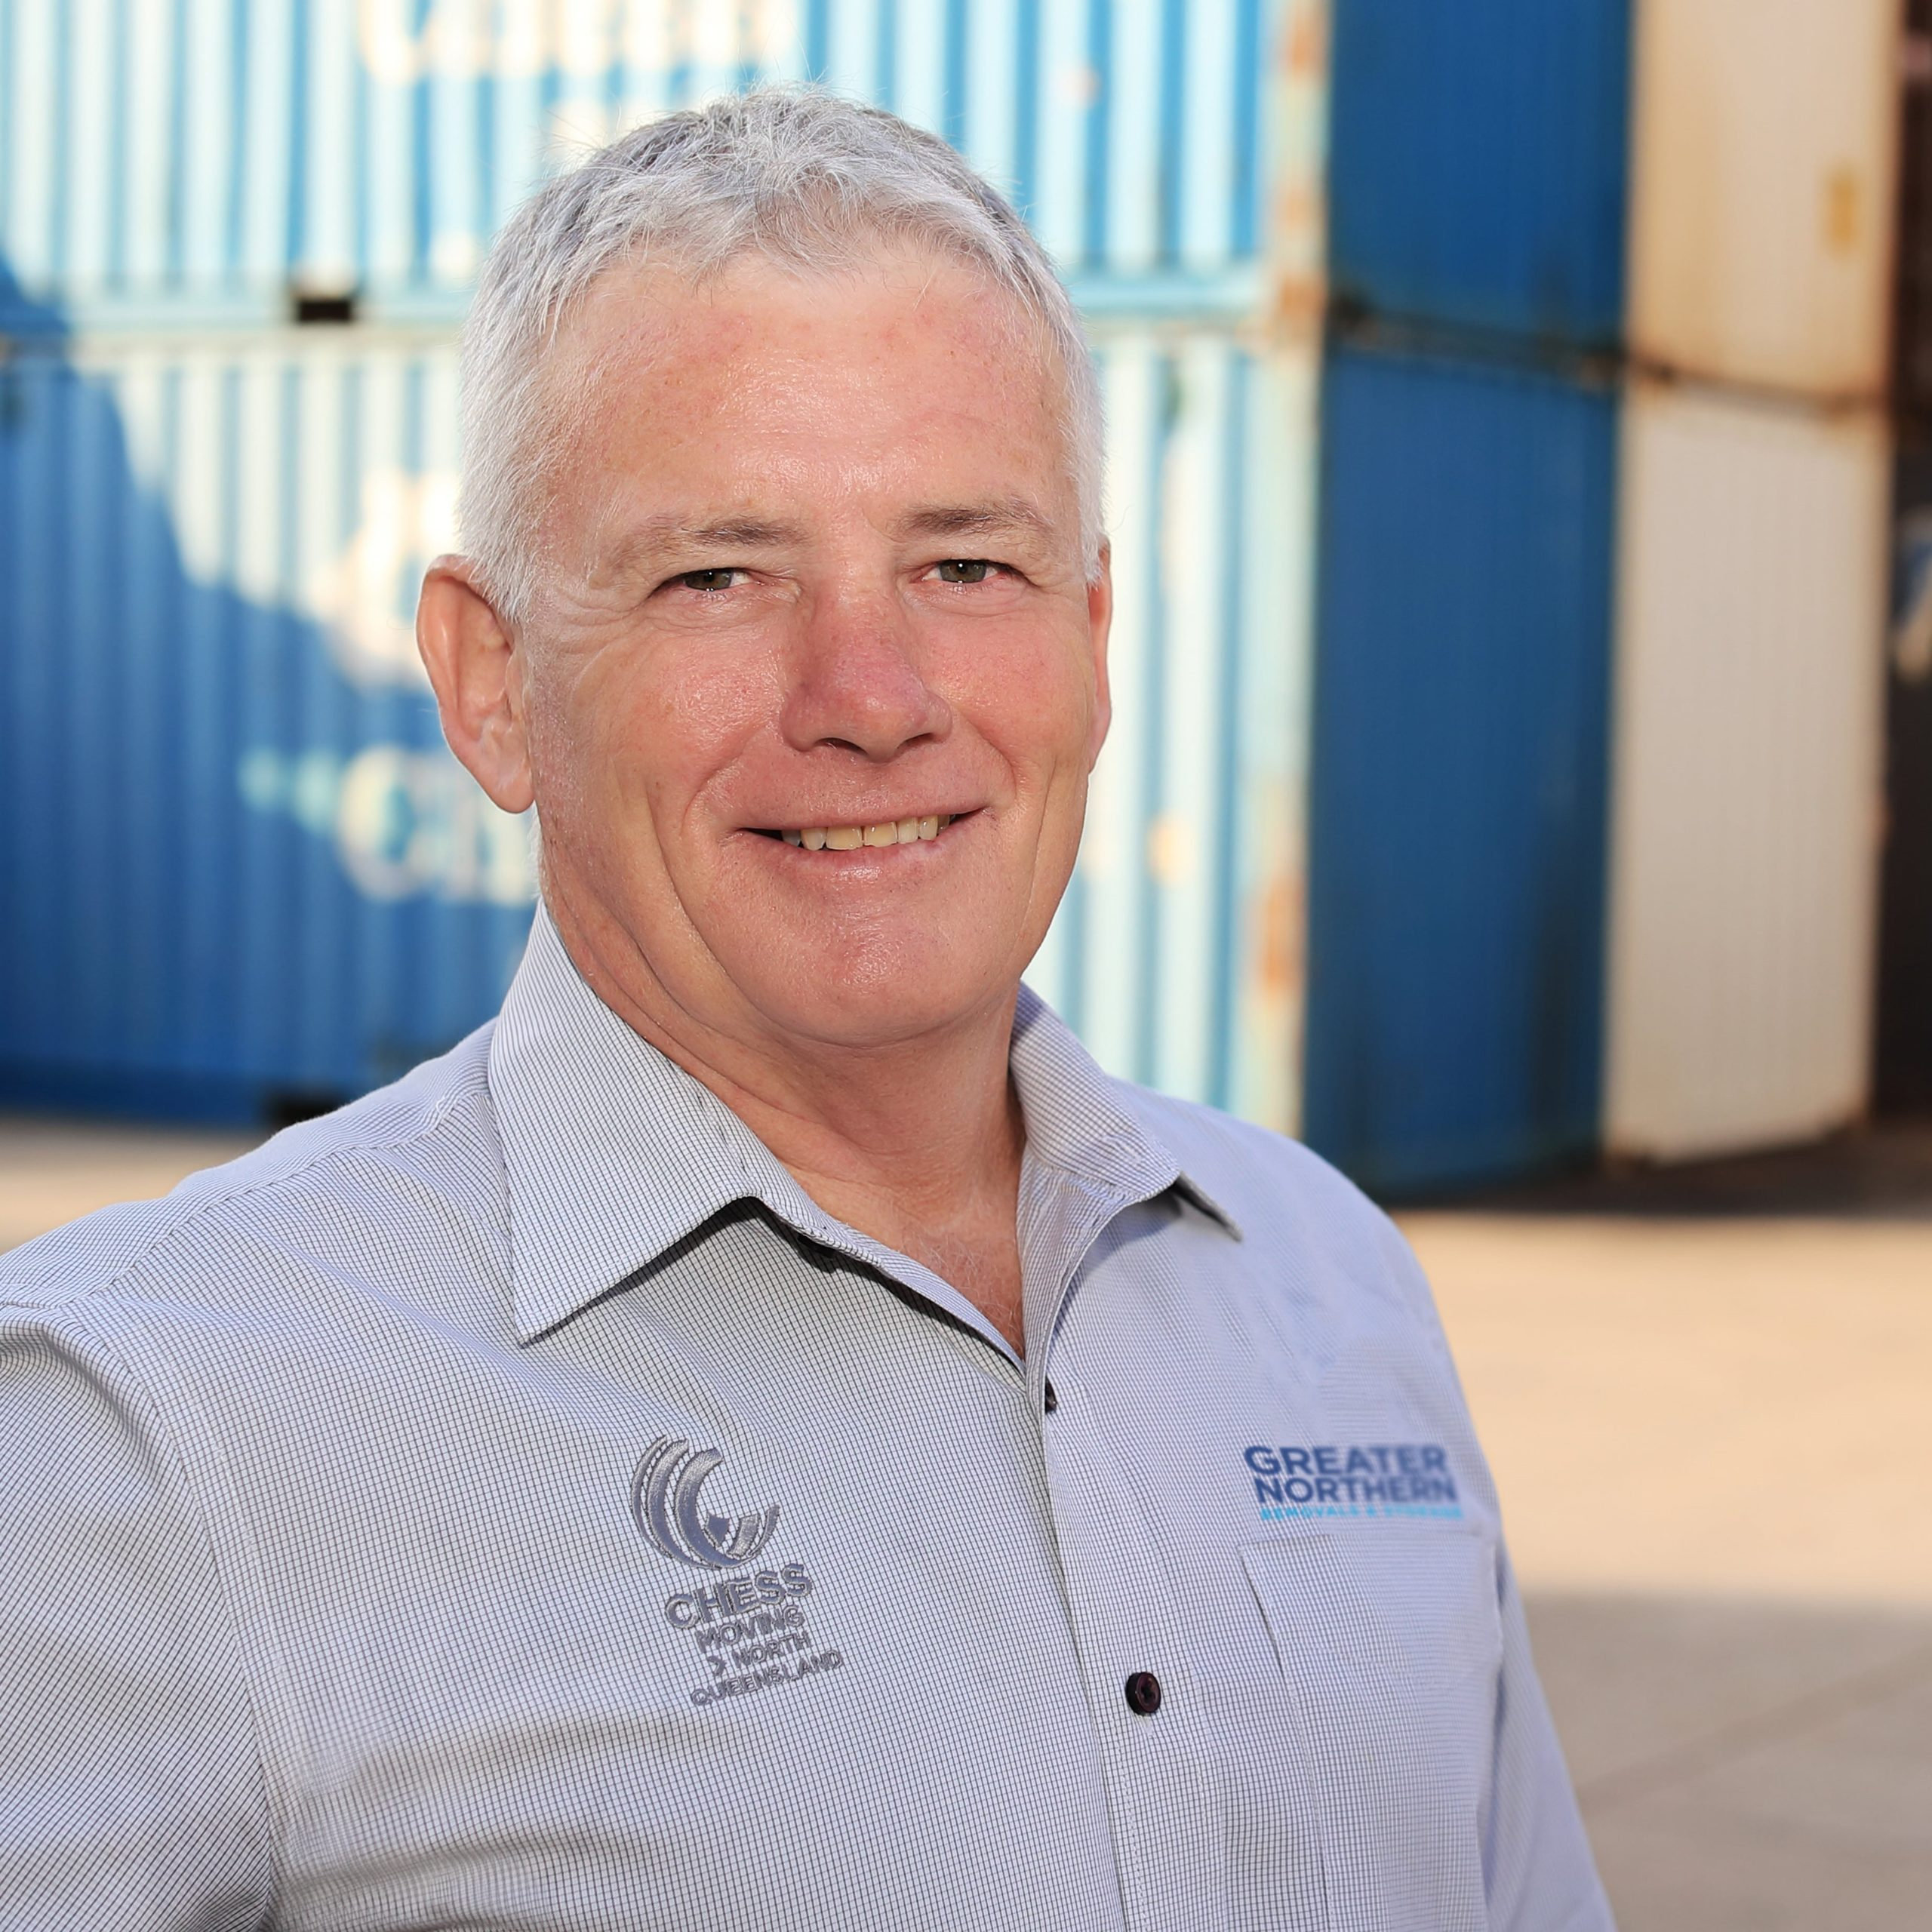 Les Forrester, Owner Operator of Greater Northern Removals and Storage